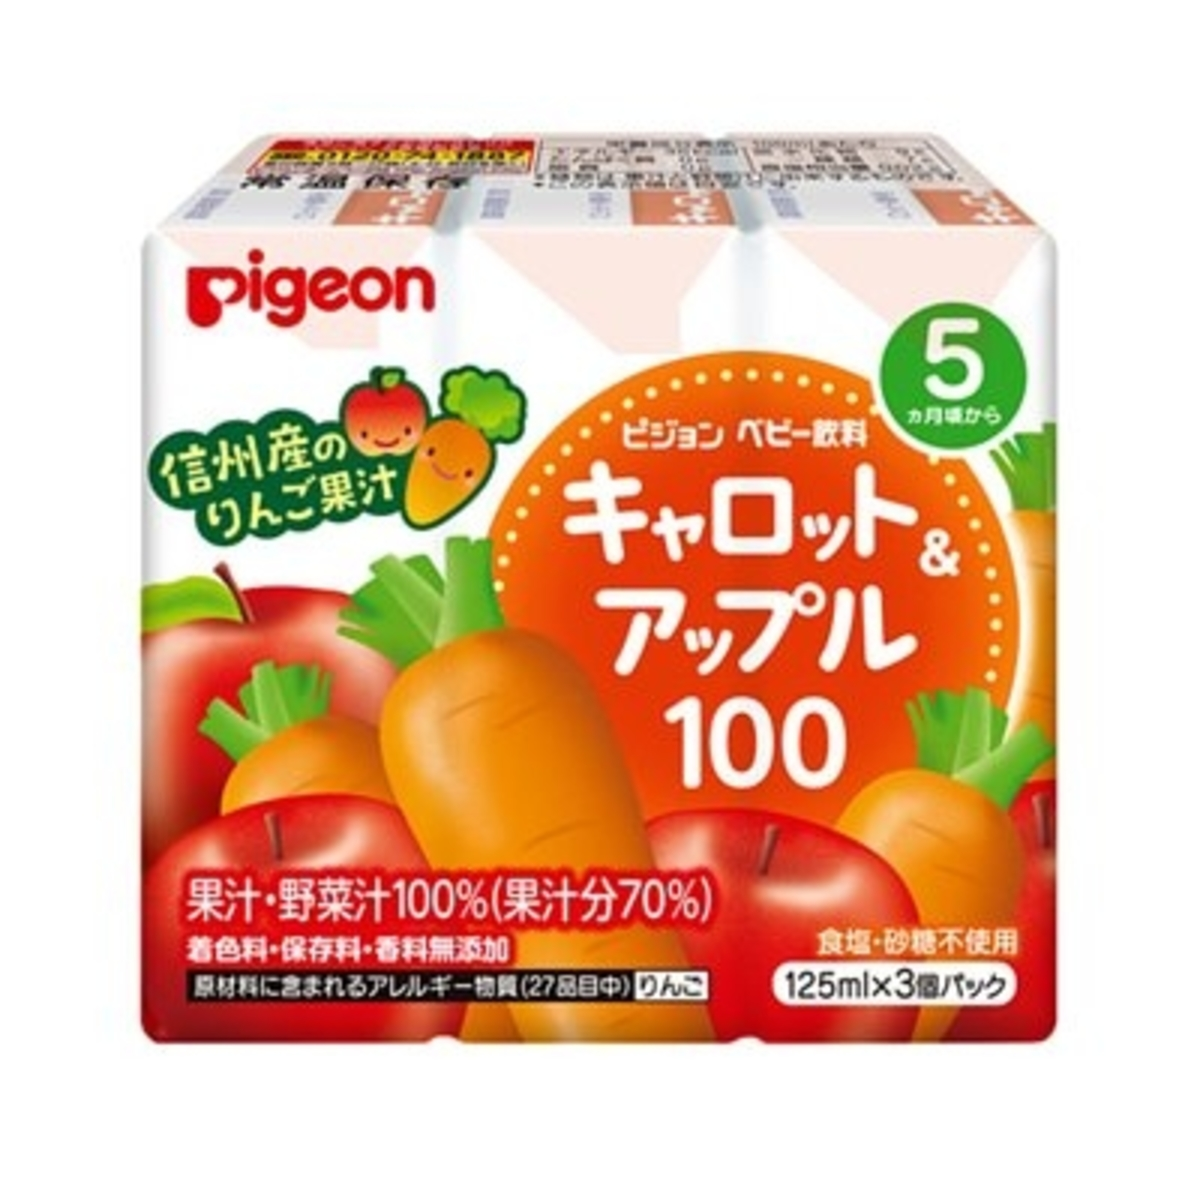 Pigeon | Carrot mixed Apple juice 125g x 3packs (for 6 ...